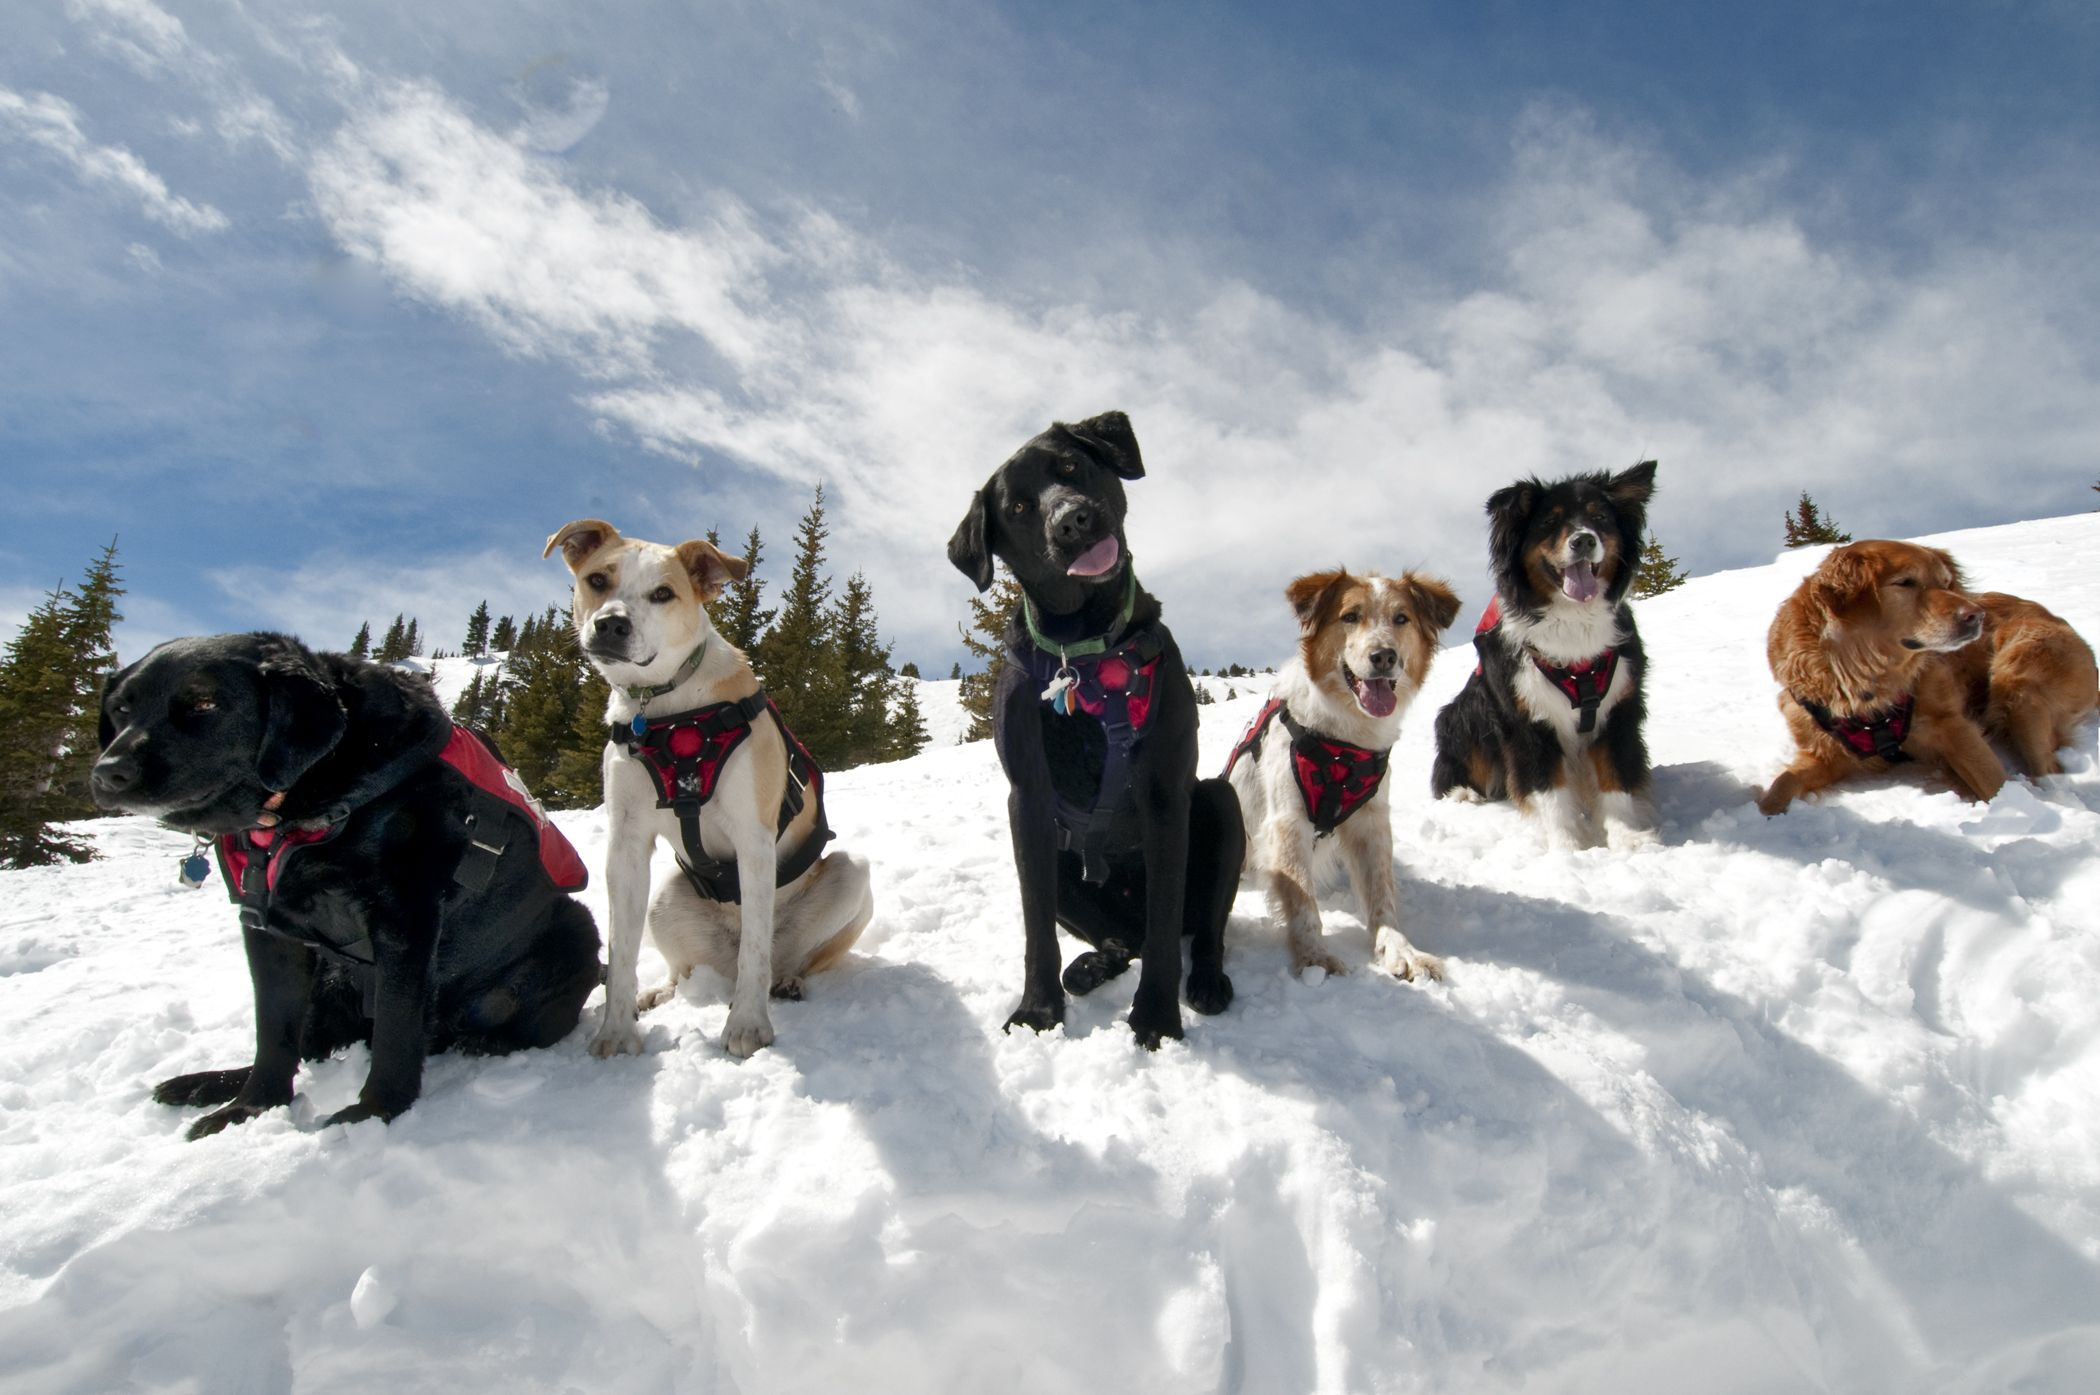 Curious ski patrol dogs at Breck. Search and rescue dogs